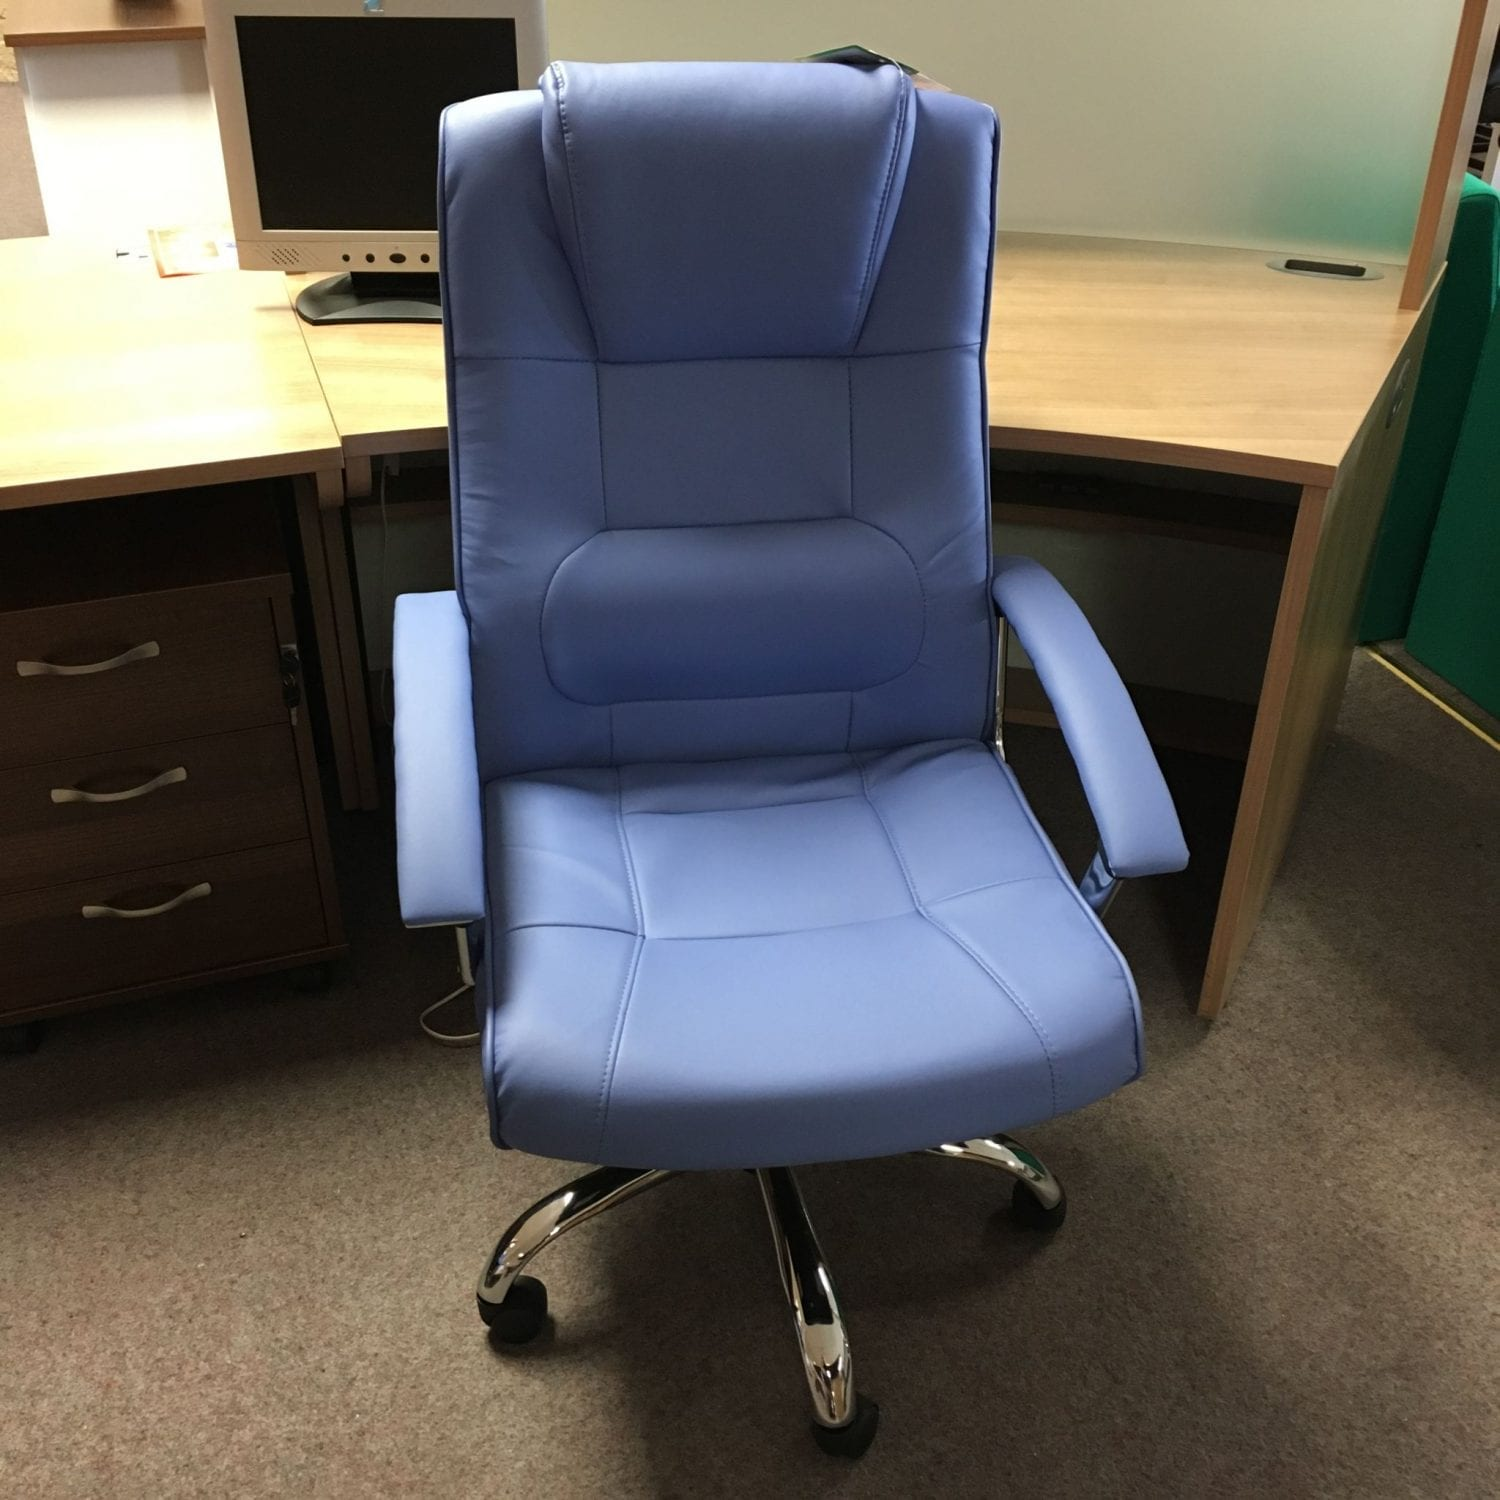 stylish office chairs uk democratic national committee chair blue faux leather exec penningtons